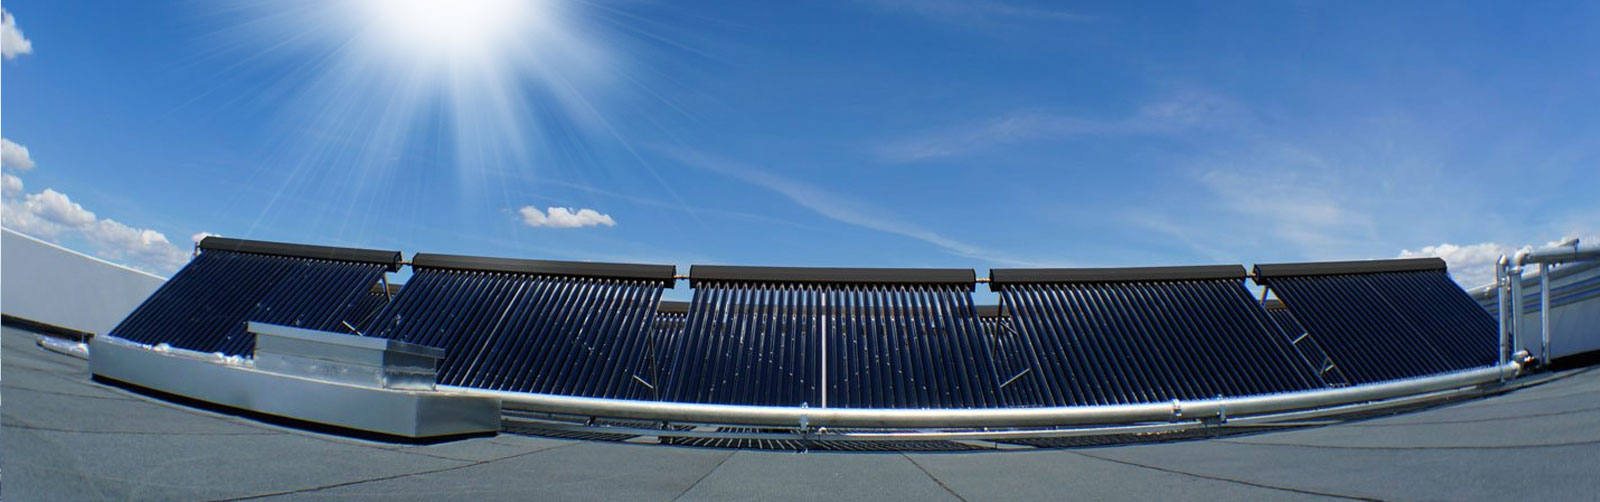 Mayca solar water heater